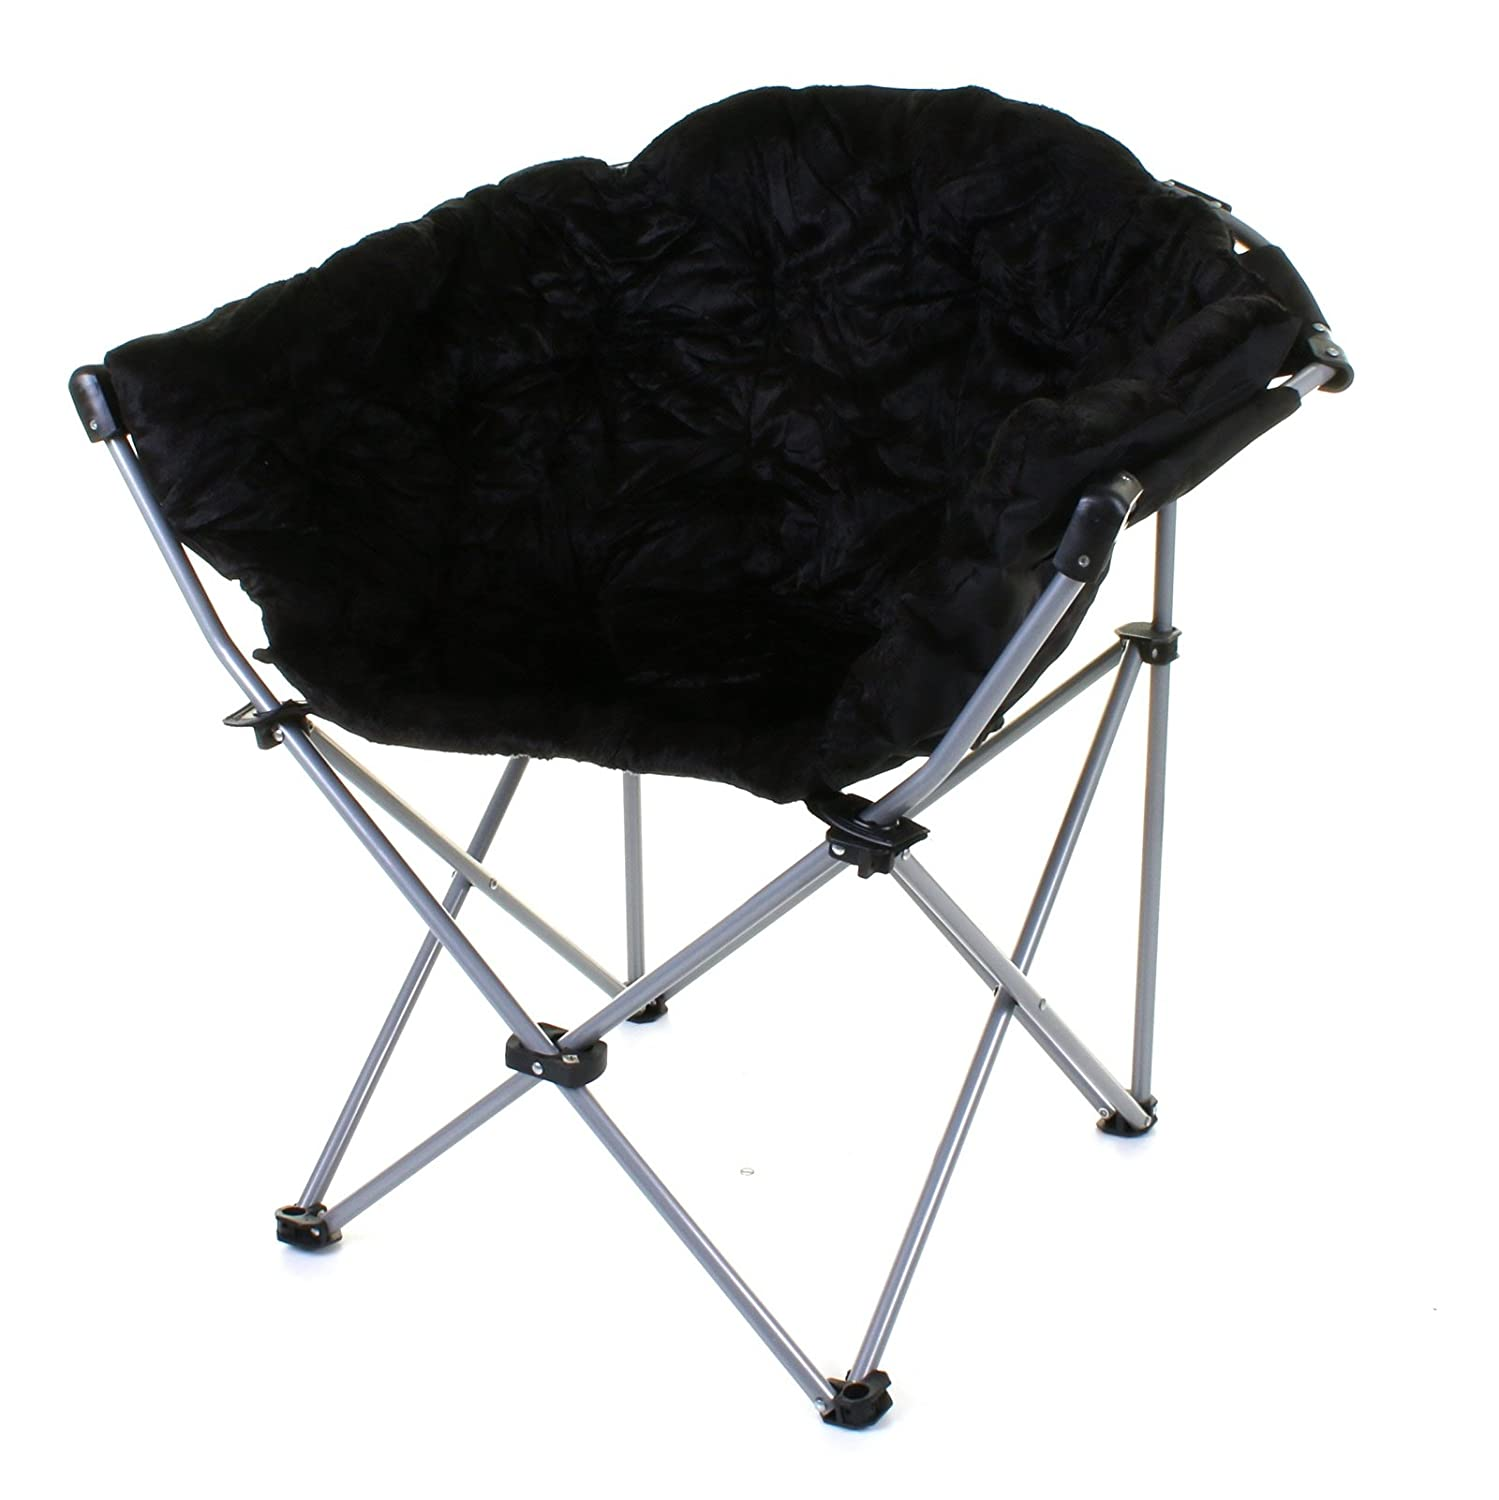 Vango Titan Oversized Chair Smoke Amazon Sports & Outdoors